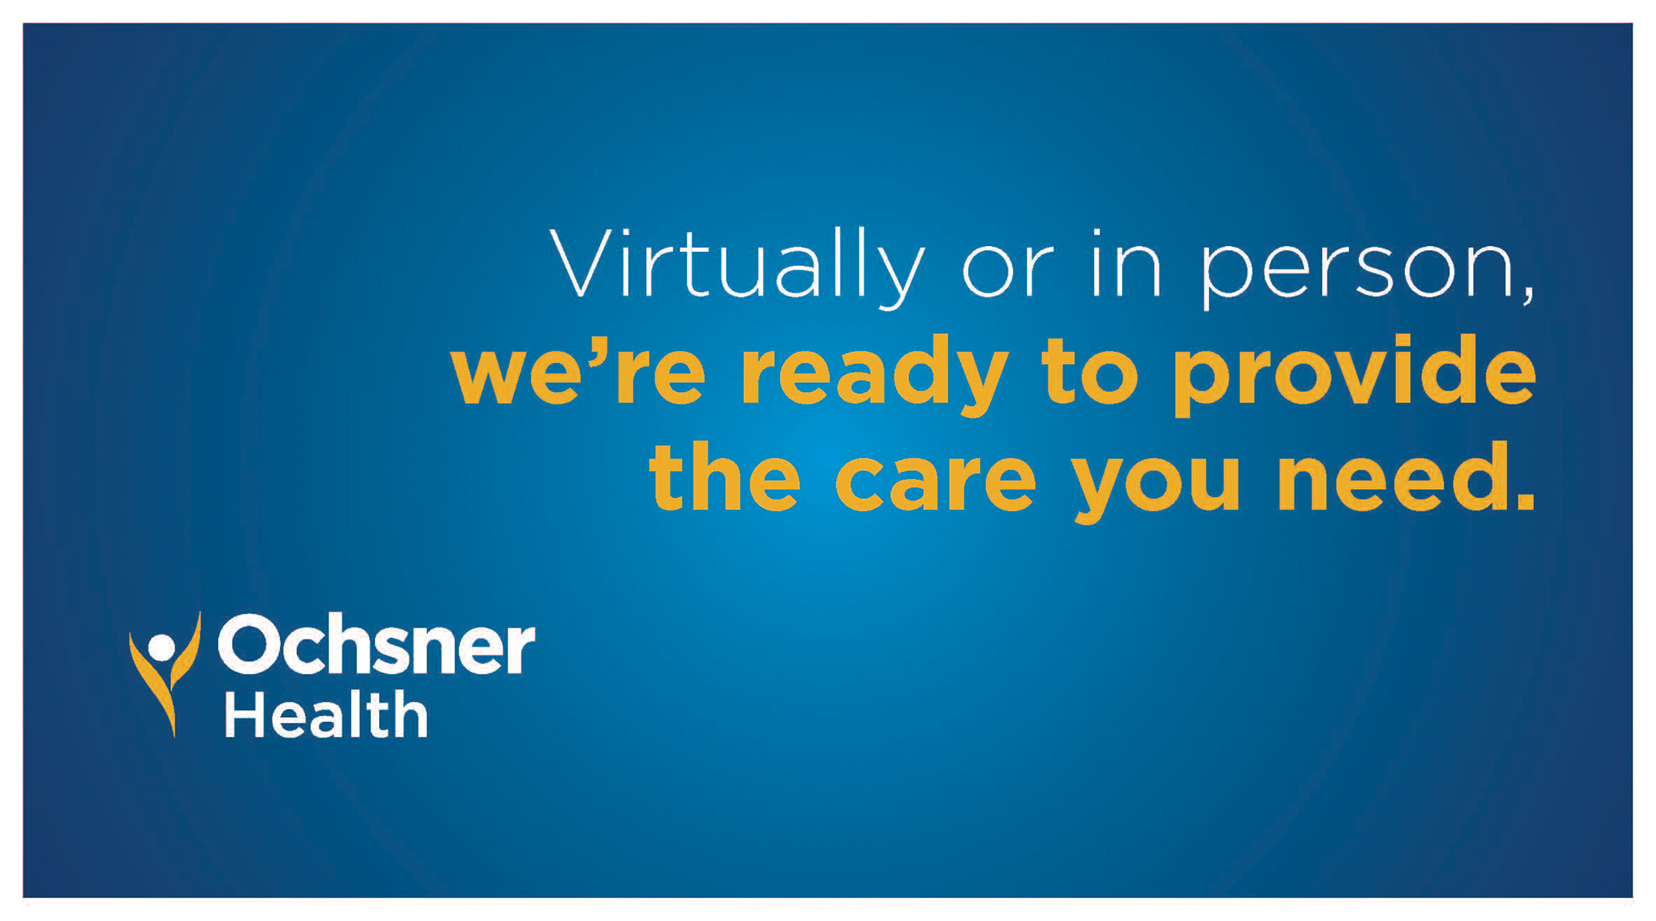 An Ochsner Health podcard that reads 'Virtually or in person, we're ready to provide the care you need.'